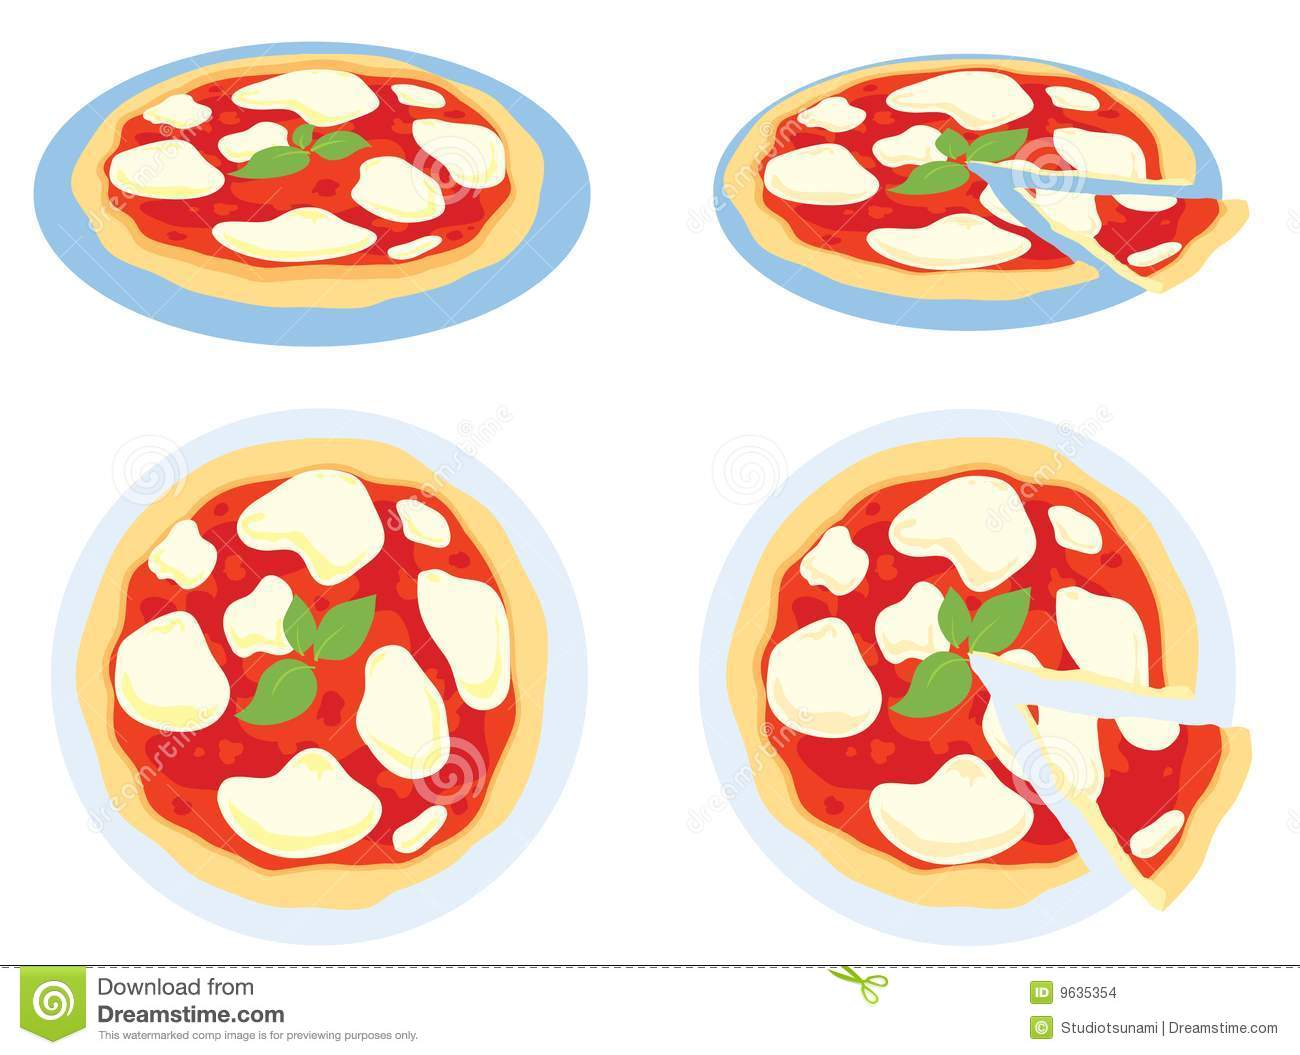 Four View Of A Margherita Pizza On White Background